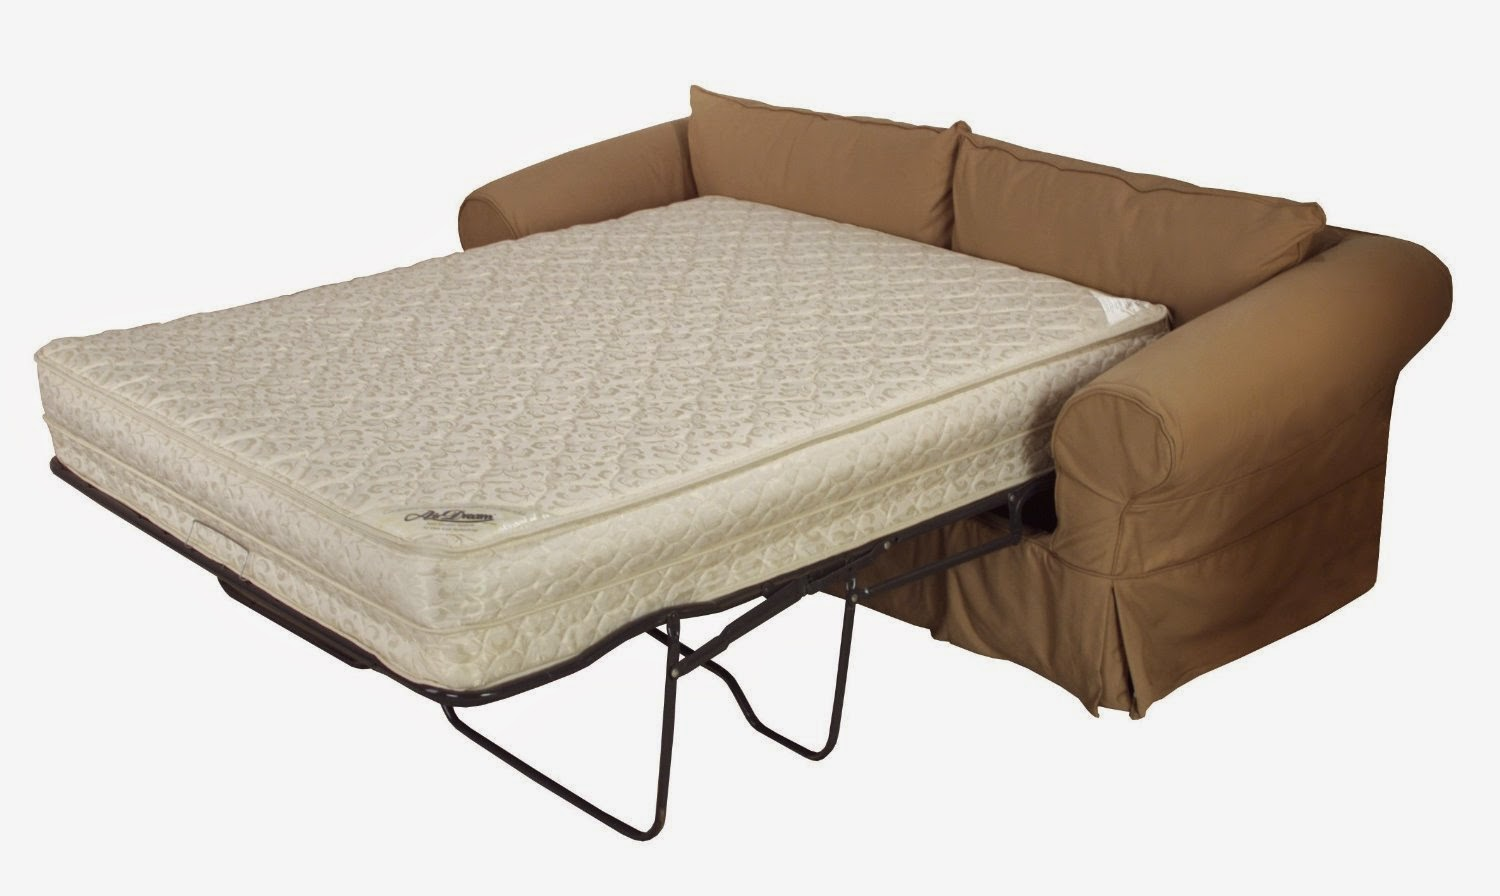 Sofa Bed In Dreams Fold Out Couch Fold Out Couch Bed